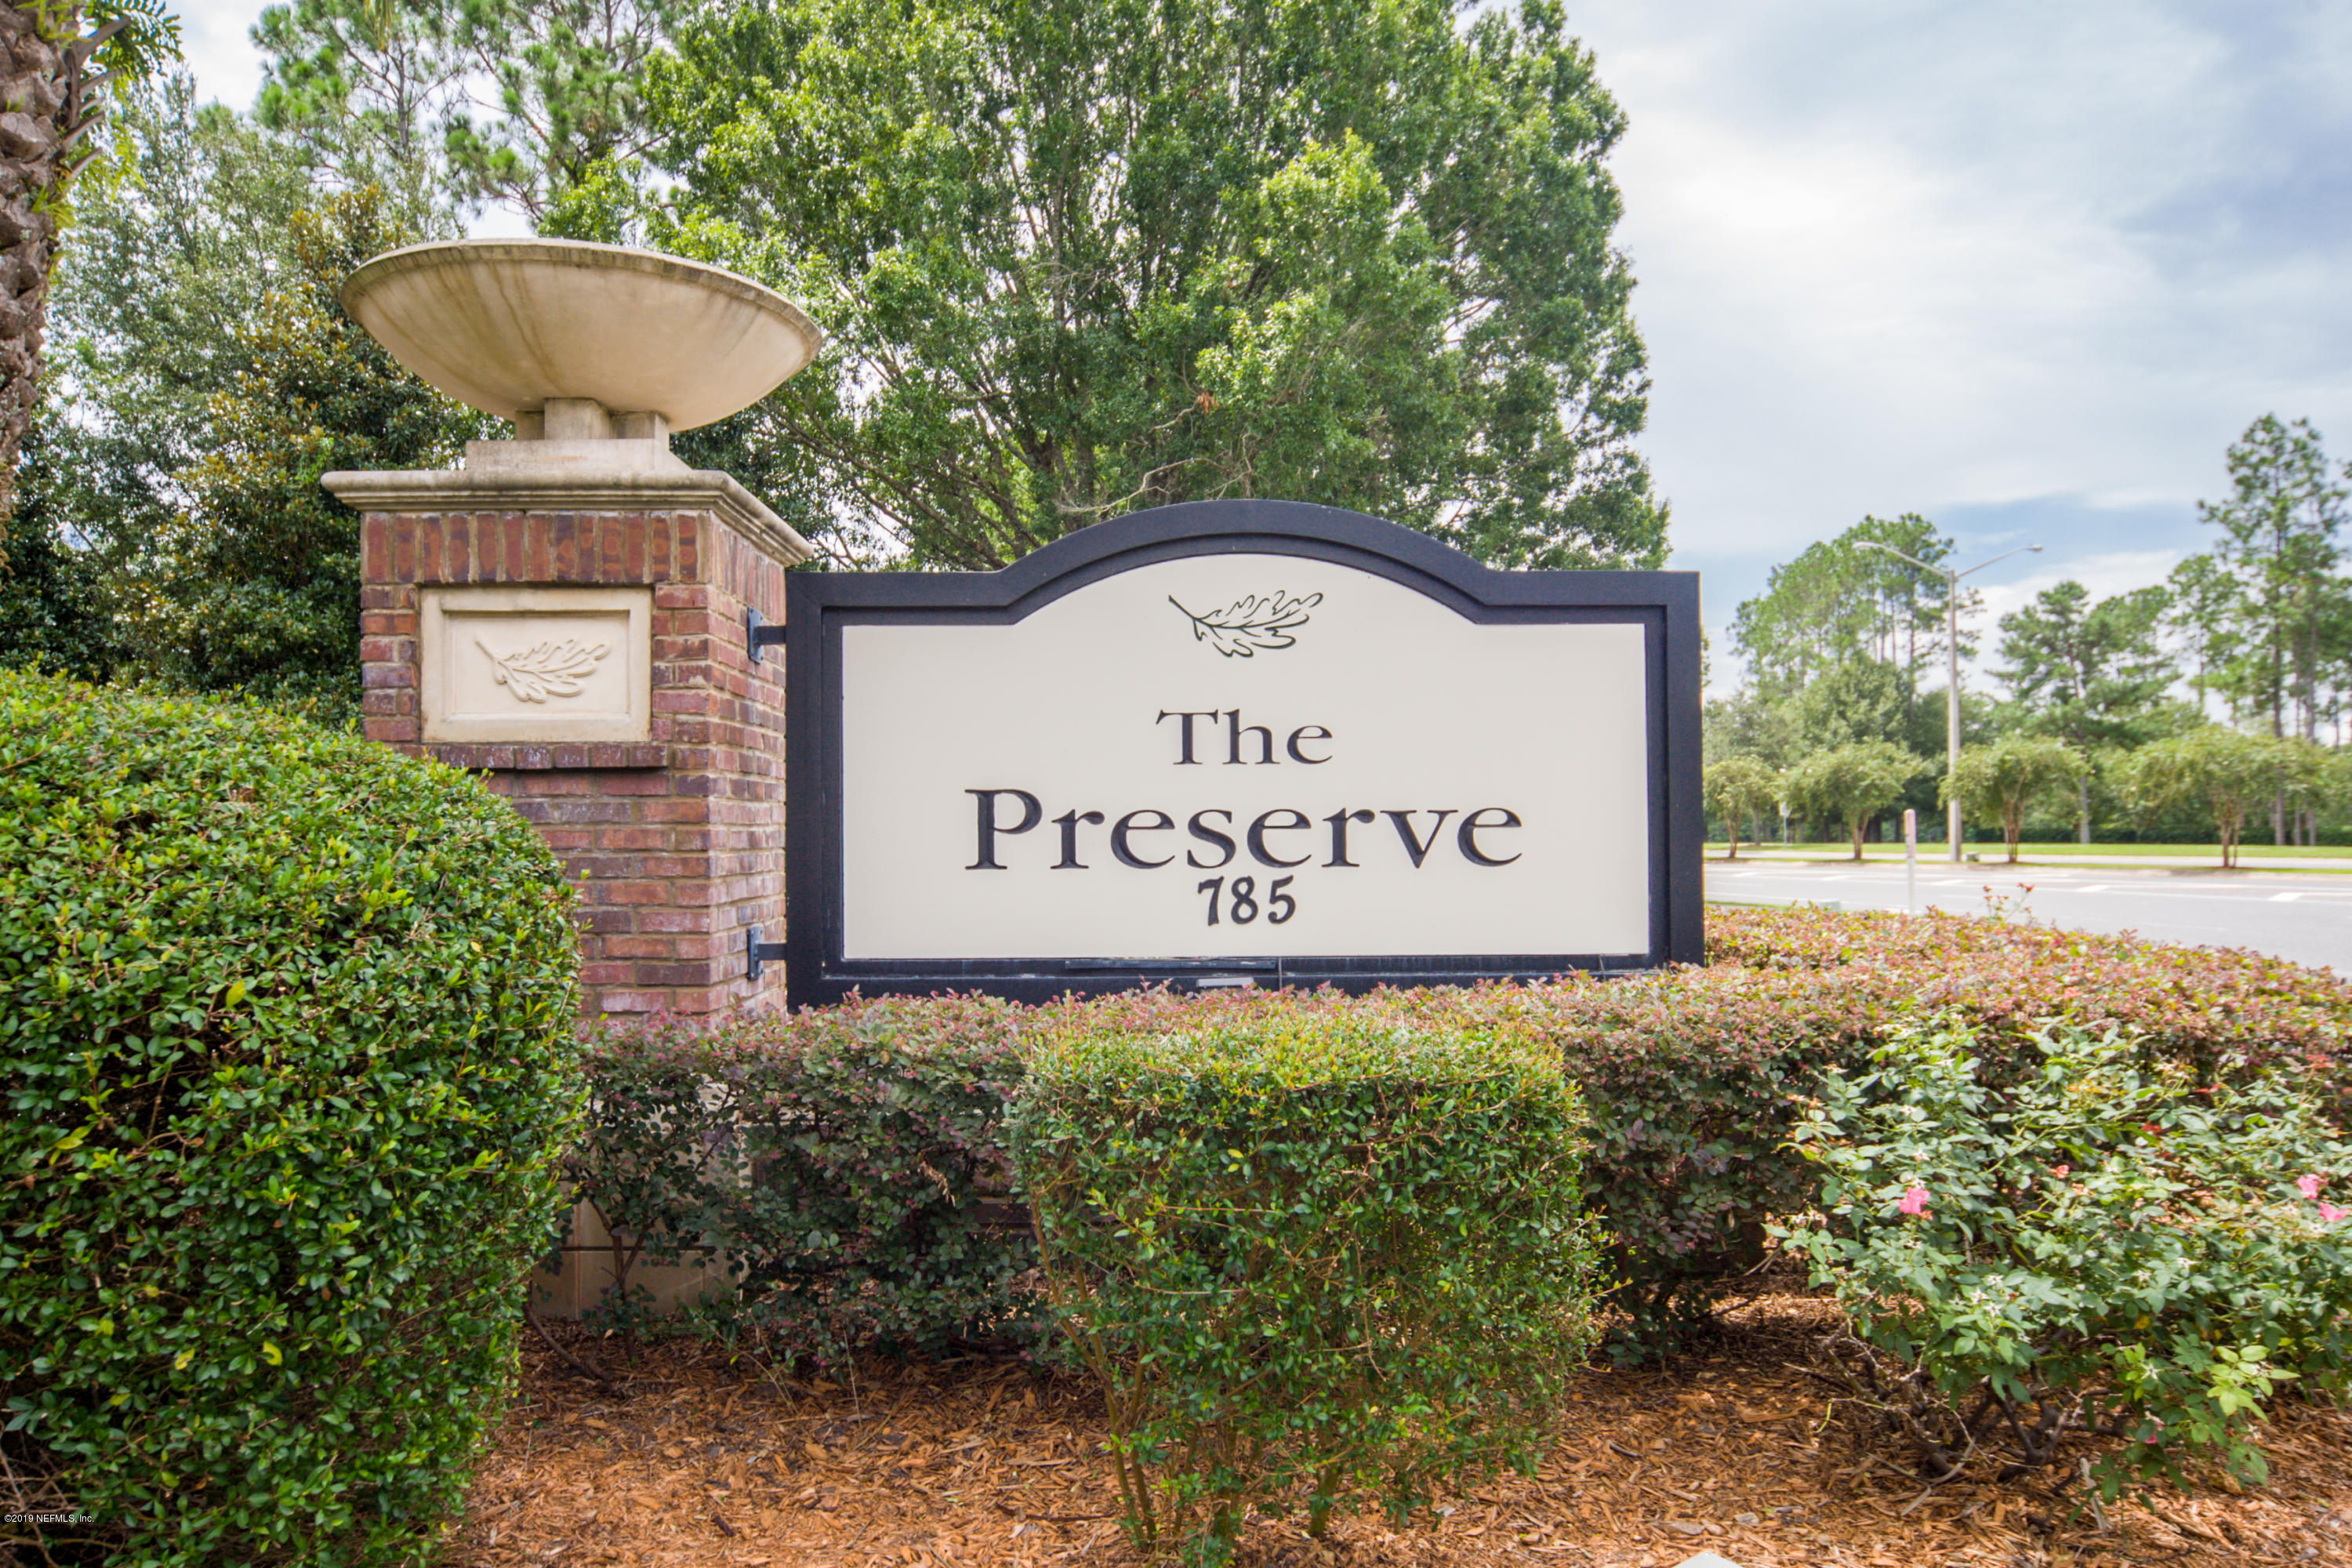 785 OAKLEAF PLANTATION, ORANGE PARK, FLORIDA 32065, 3 Bedrooms Bedrooms, ,2 BathroomsBathrooms,Condo,For sale,OAKLEAF PLANTATION,1022223